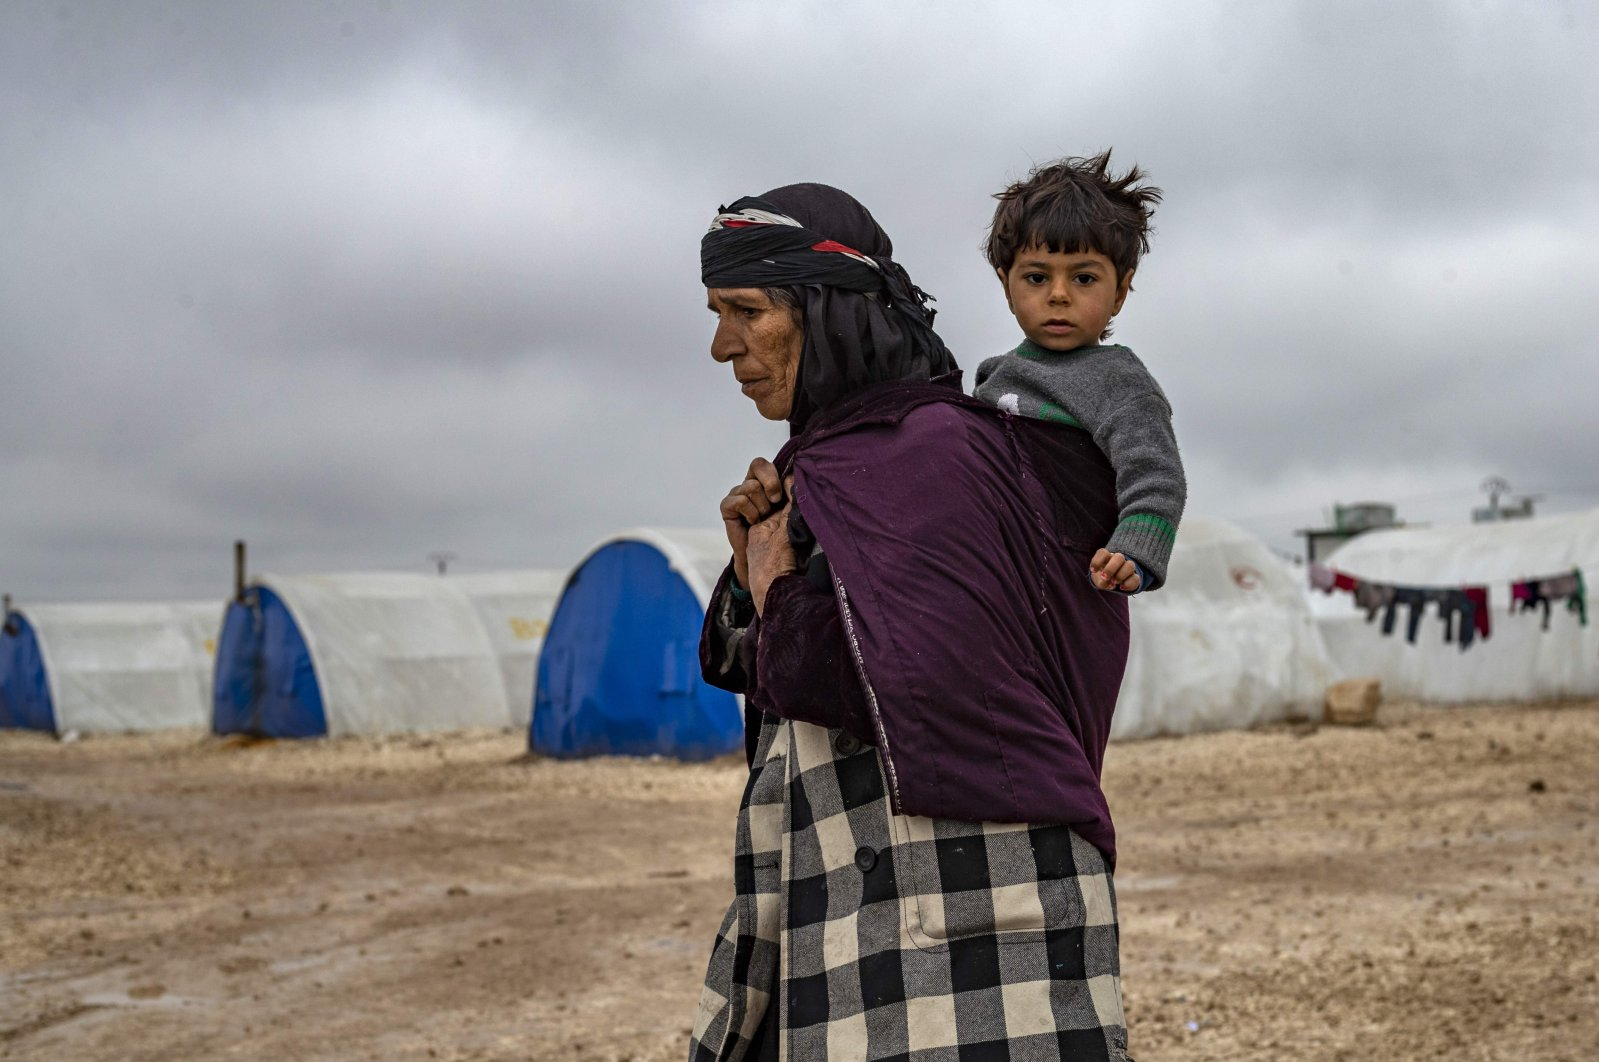 An elderly displaced Syrian woman carries a child in the Washukanni Camp for internally displaced people near al-Hasakah in northeastern Syria on Feb. 17, 2020. (AFP File Photo)